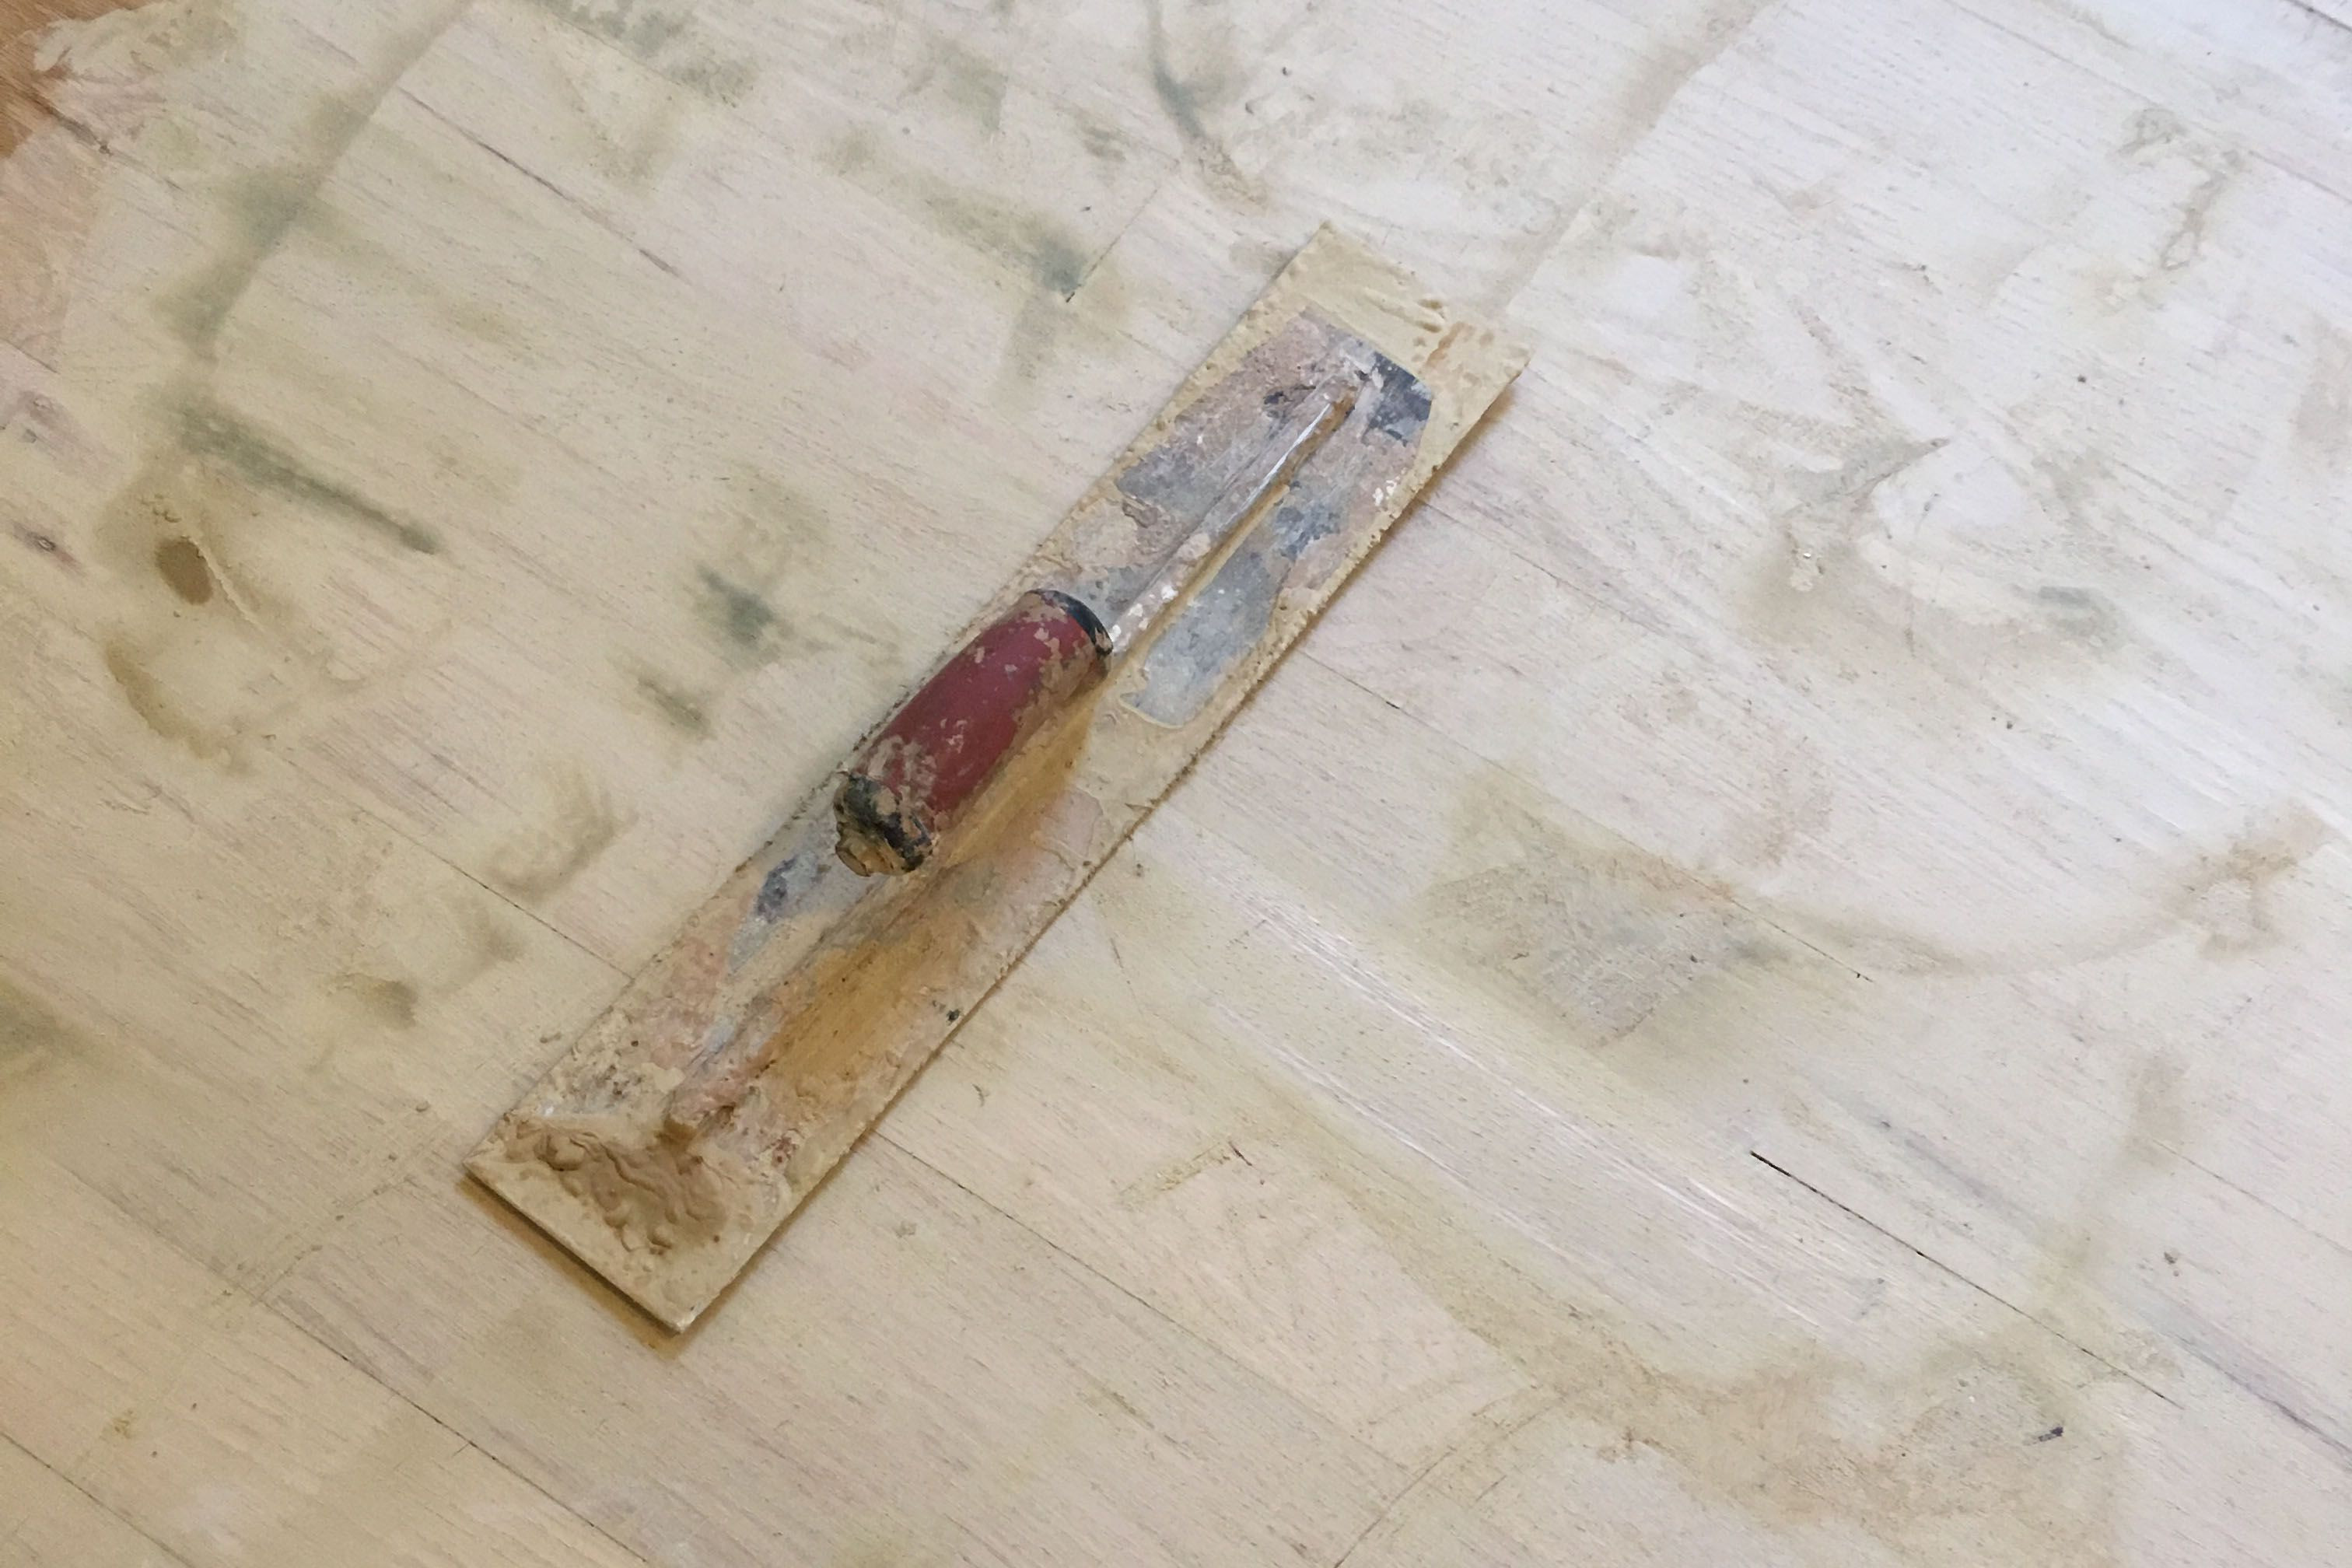 bona hardwood floor cleaner reviews of 7 things to know before you refinish hardwood floors throughout trough hardwood floor manhattan avenue via smallspaces about com 579138783df78c173490f8a5